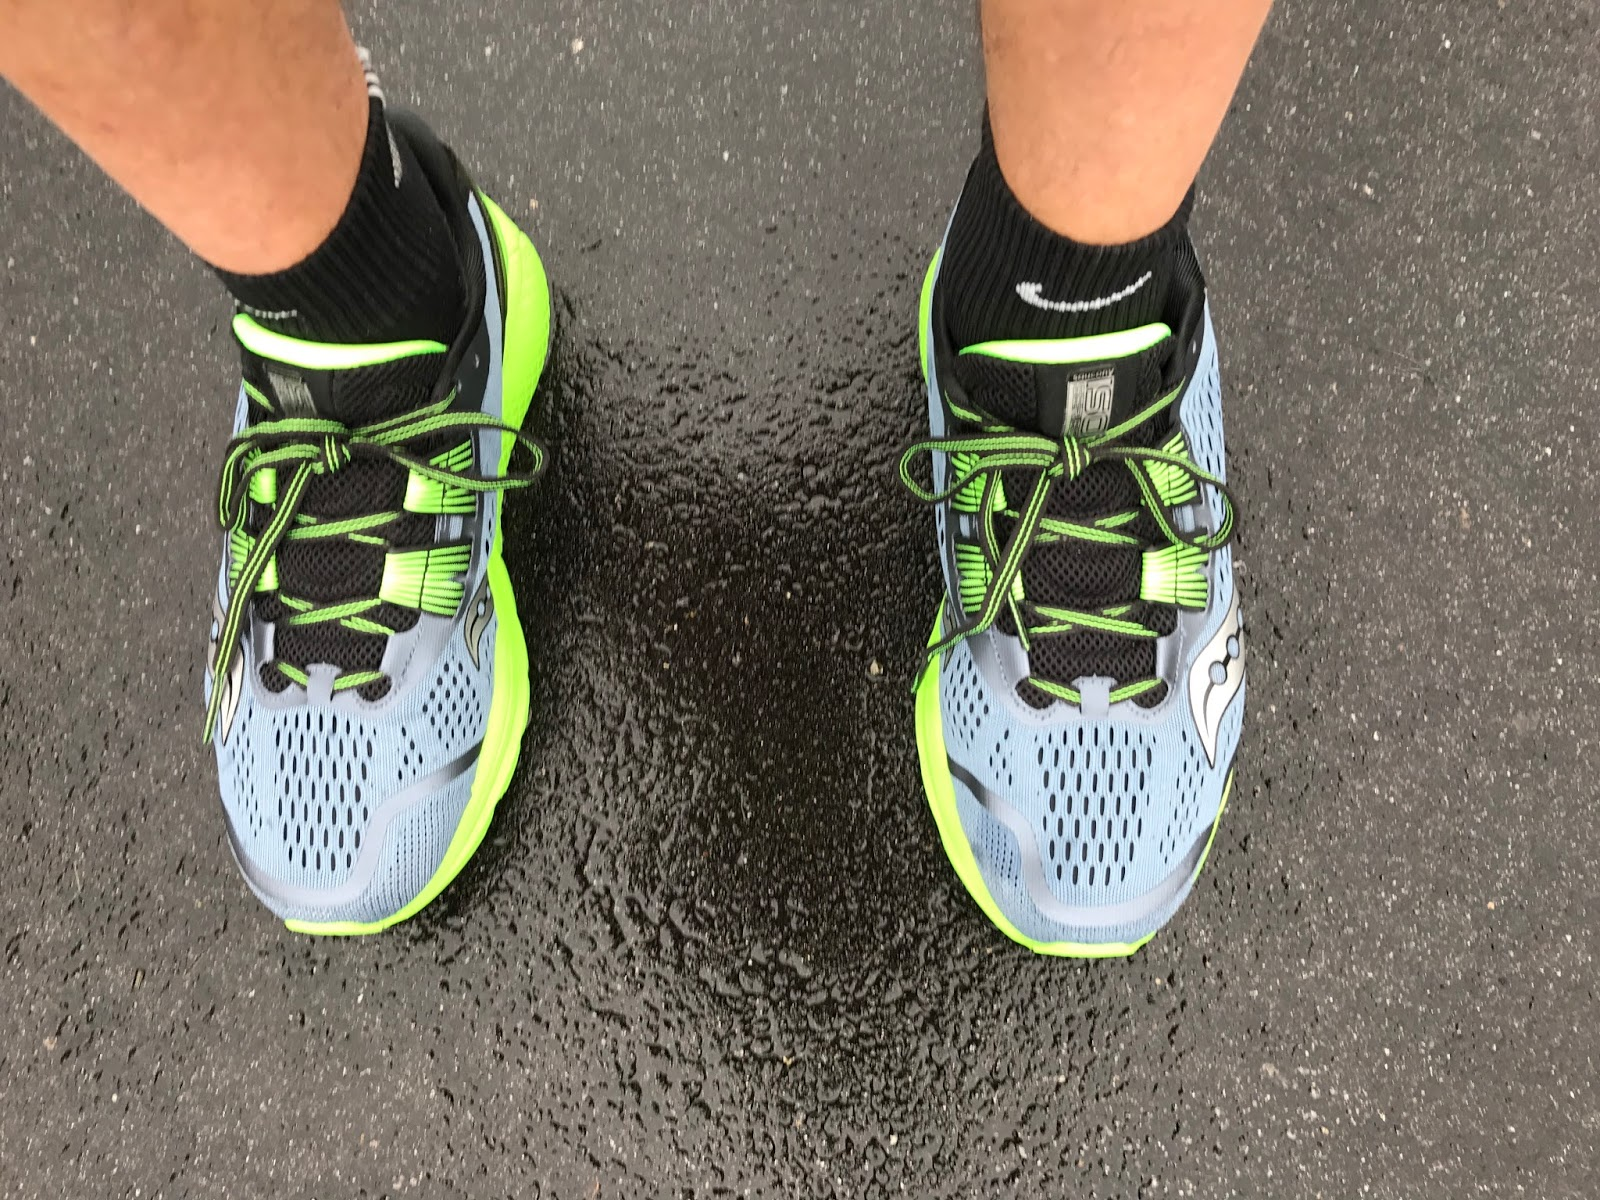 6be6b66730c8 The ISO 3 gets an engineered mesh upper. The widely spaced ISO loops and lacing  relieve all top of the foot pressure